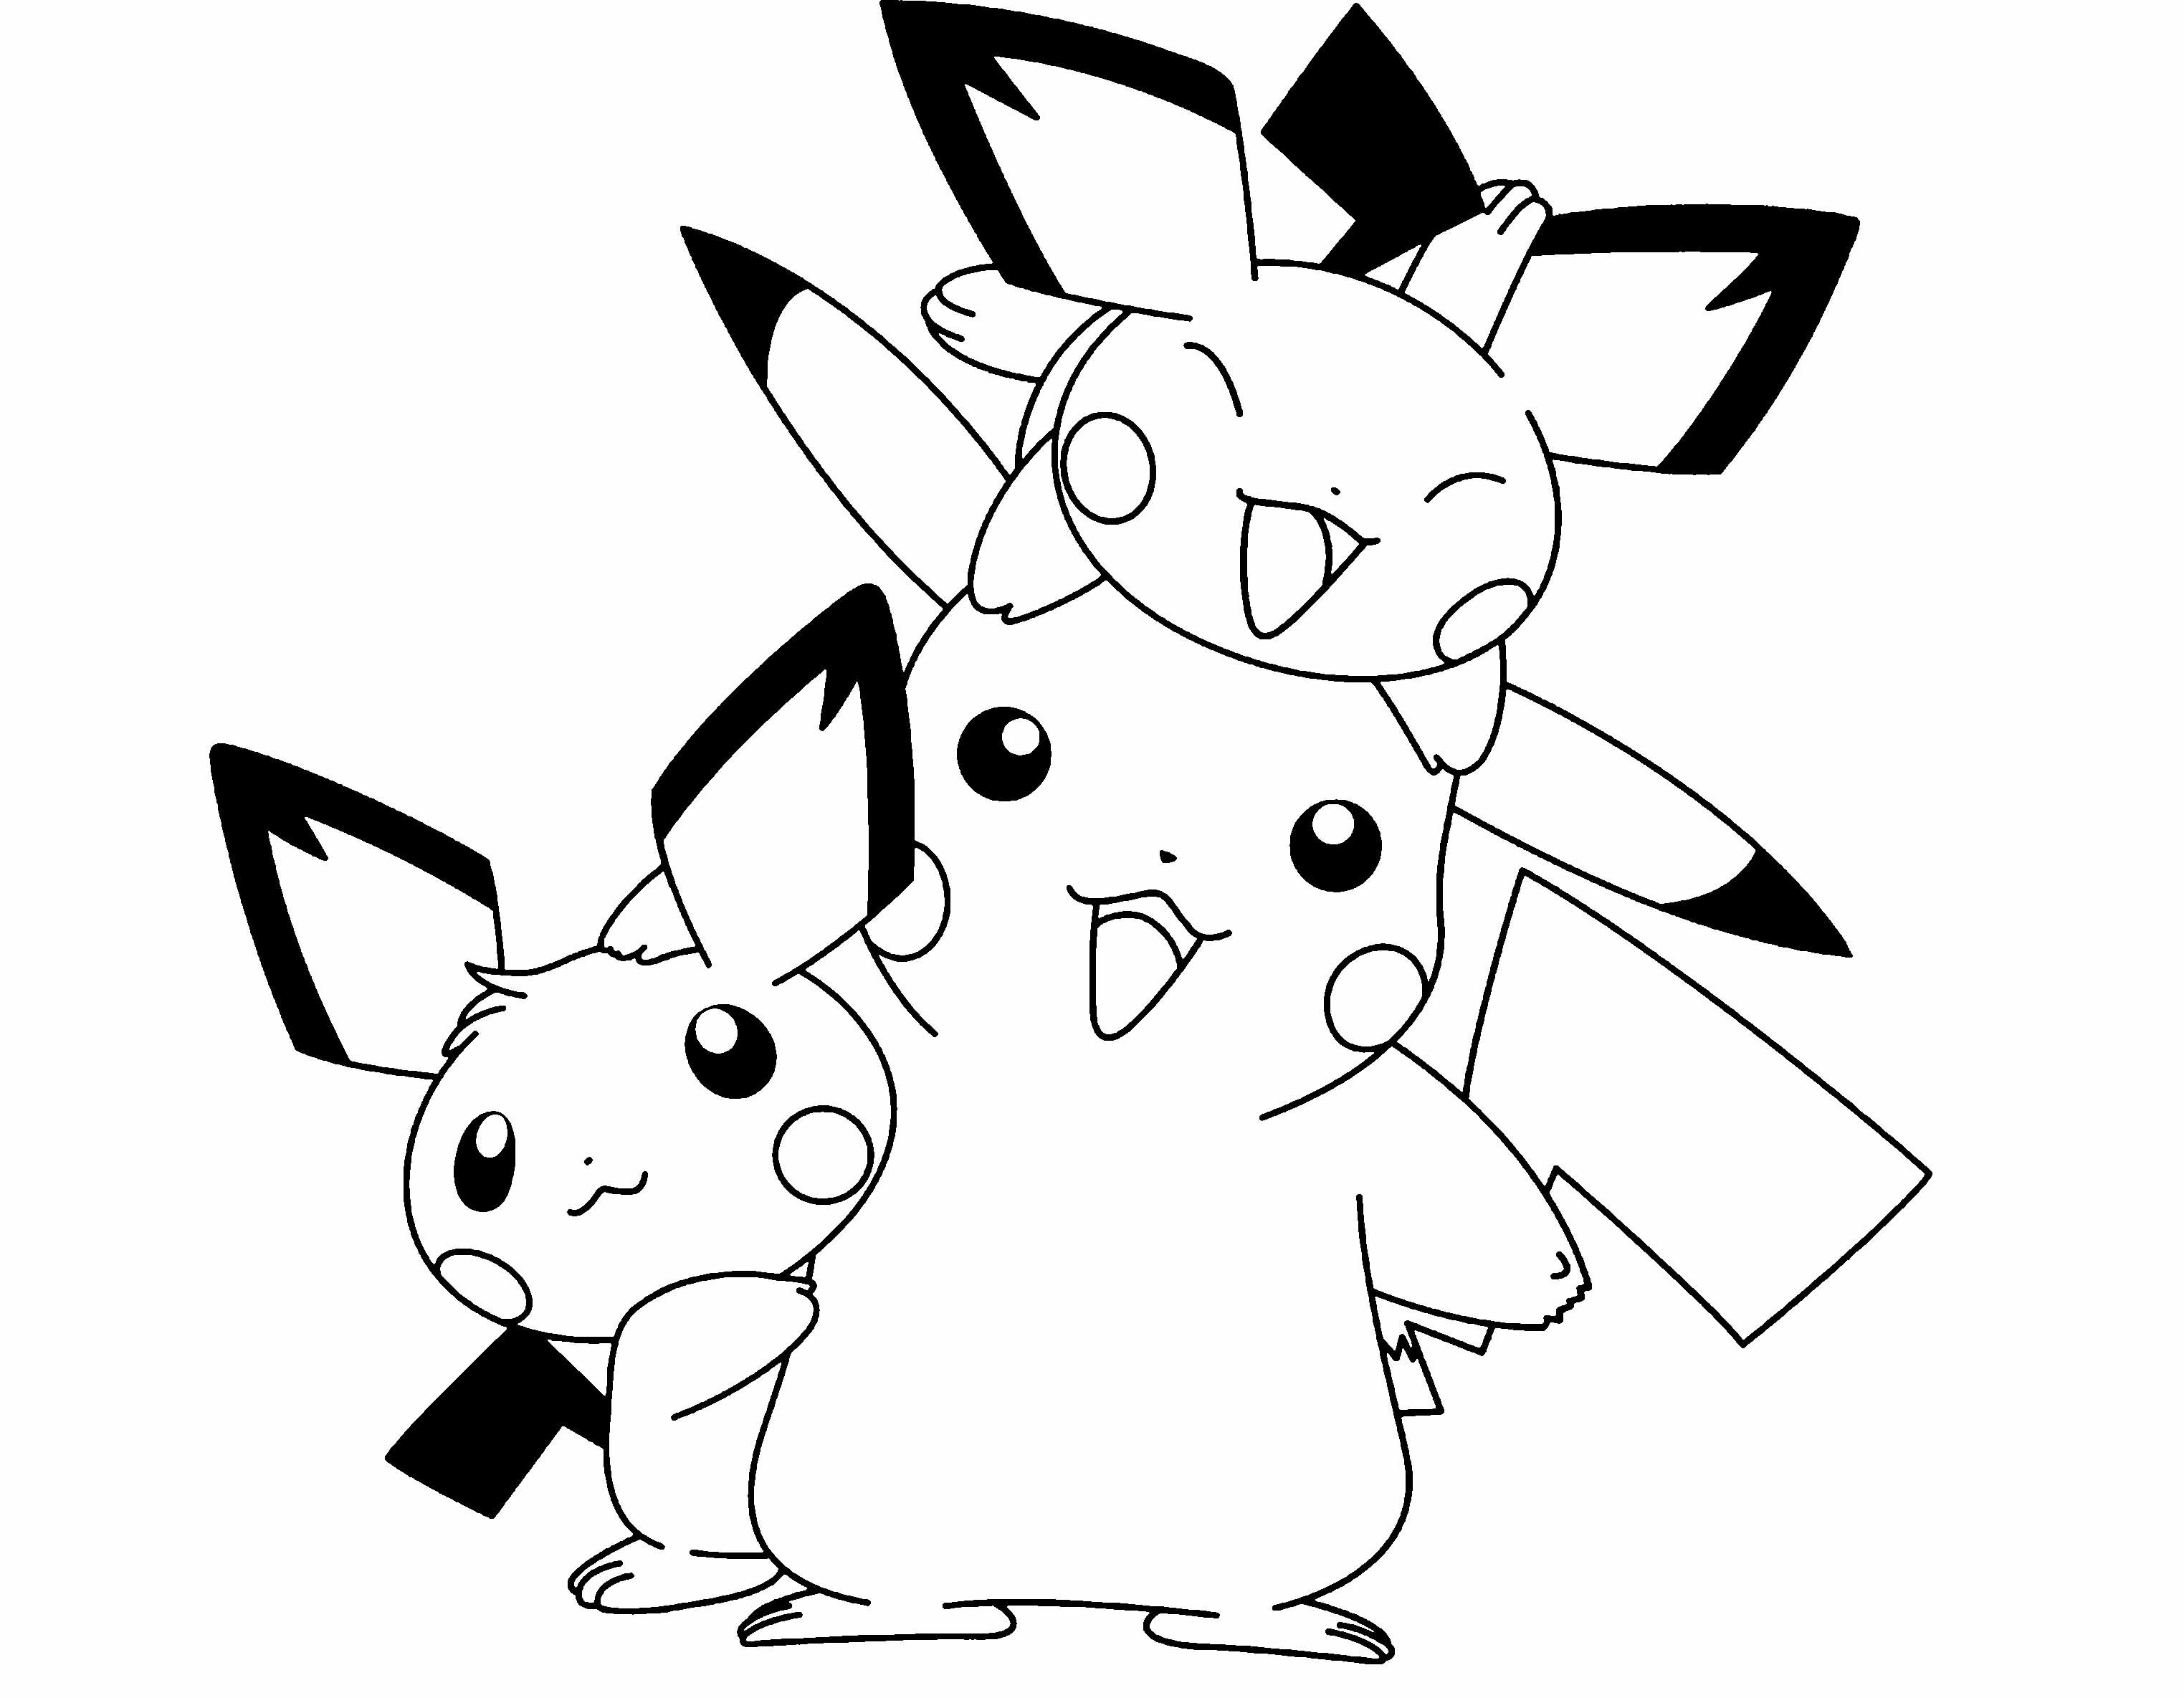 3047x2369 Free Printable Pikachu Coloring Pages For Kids Incredible Cute